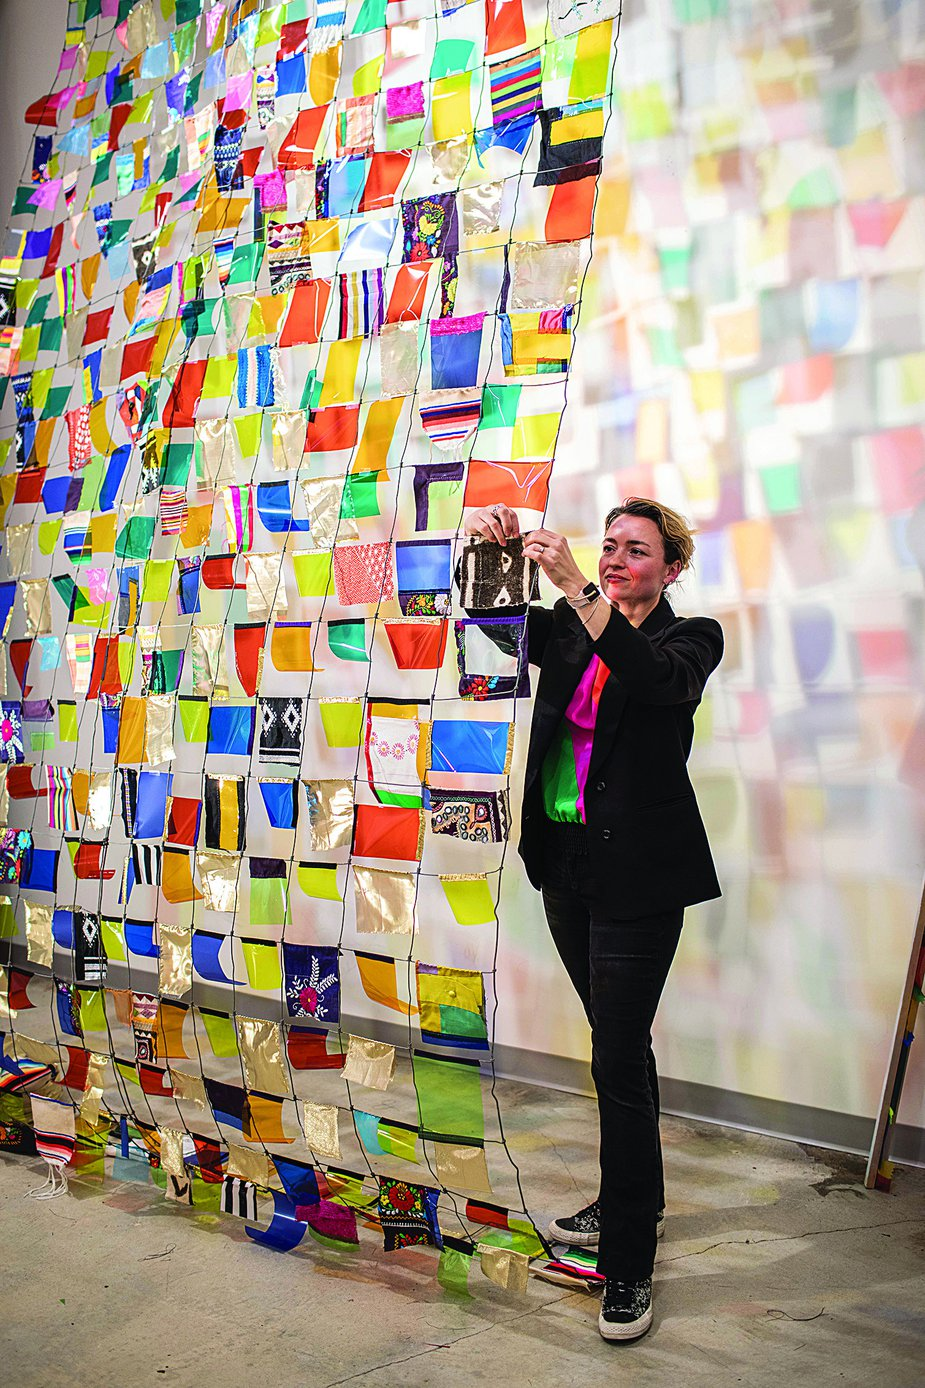 Rachel Hayes' works—often featuring colorful sheets of fabric and acetate—have been displayed across the country. Photo by Valerie Wei-Haas